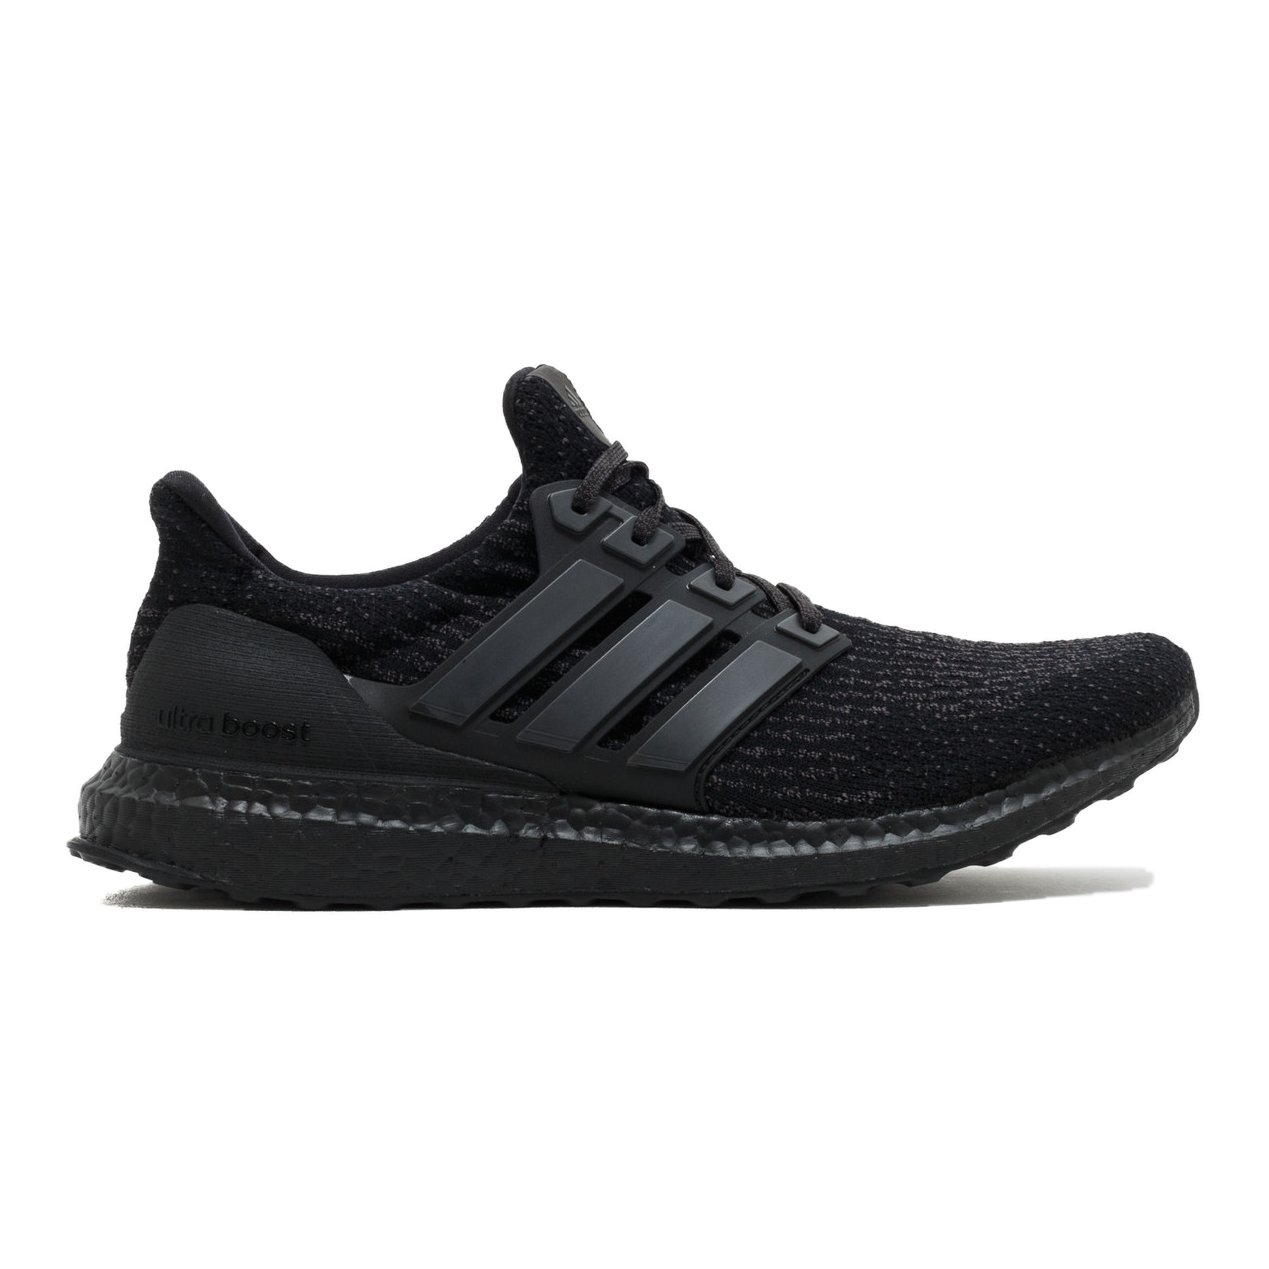 Adidas Ultraboost 3.0 Triple Black 2.0